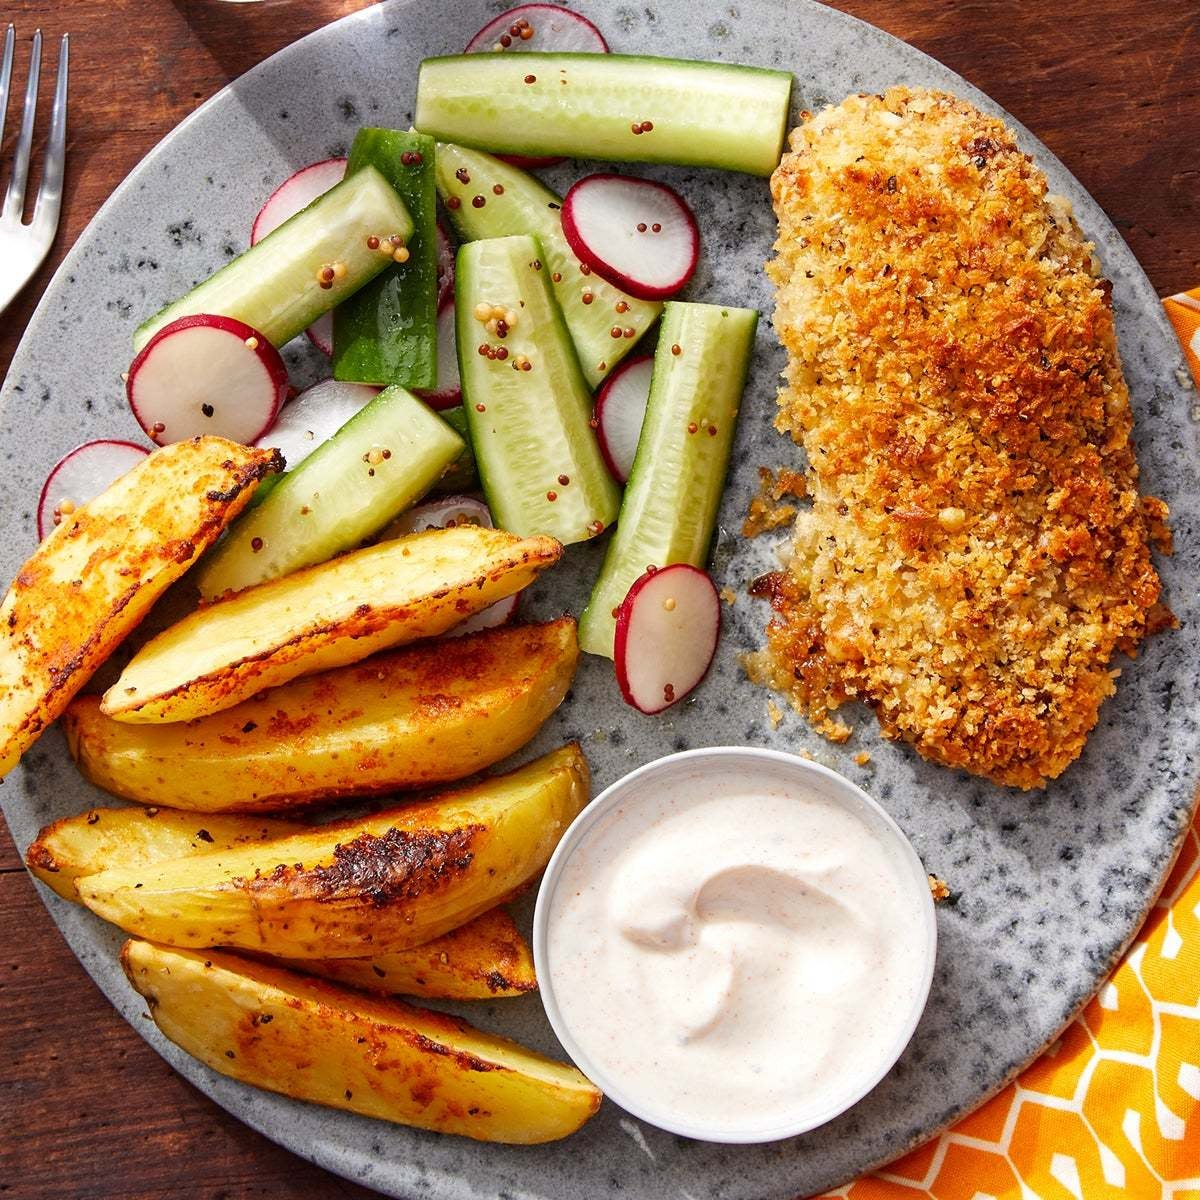 Cheesy Panko-Crusted Chicken with Roasted Potato Wedges & Pickled Vegetables